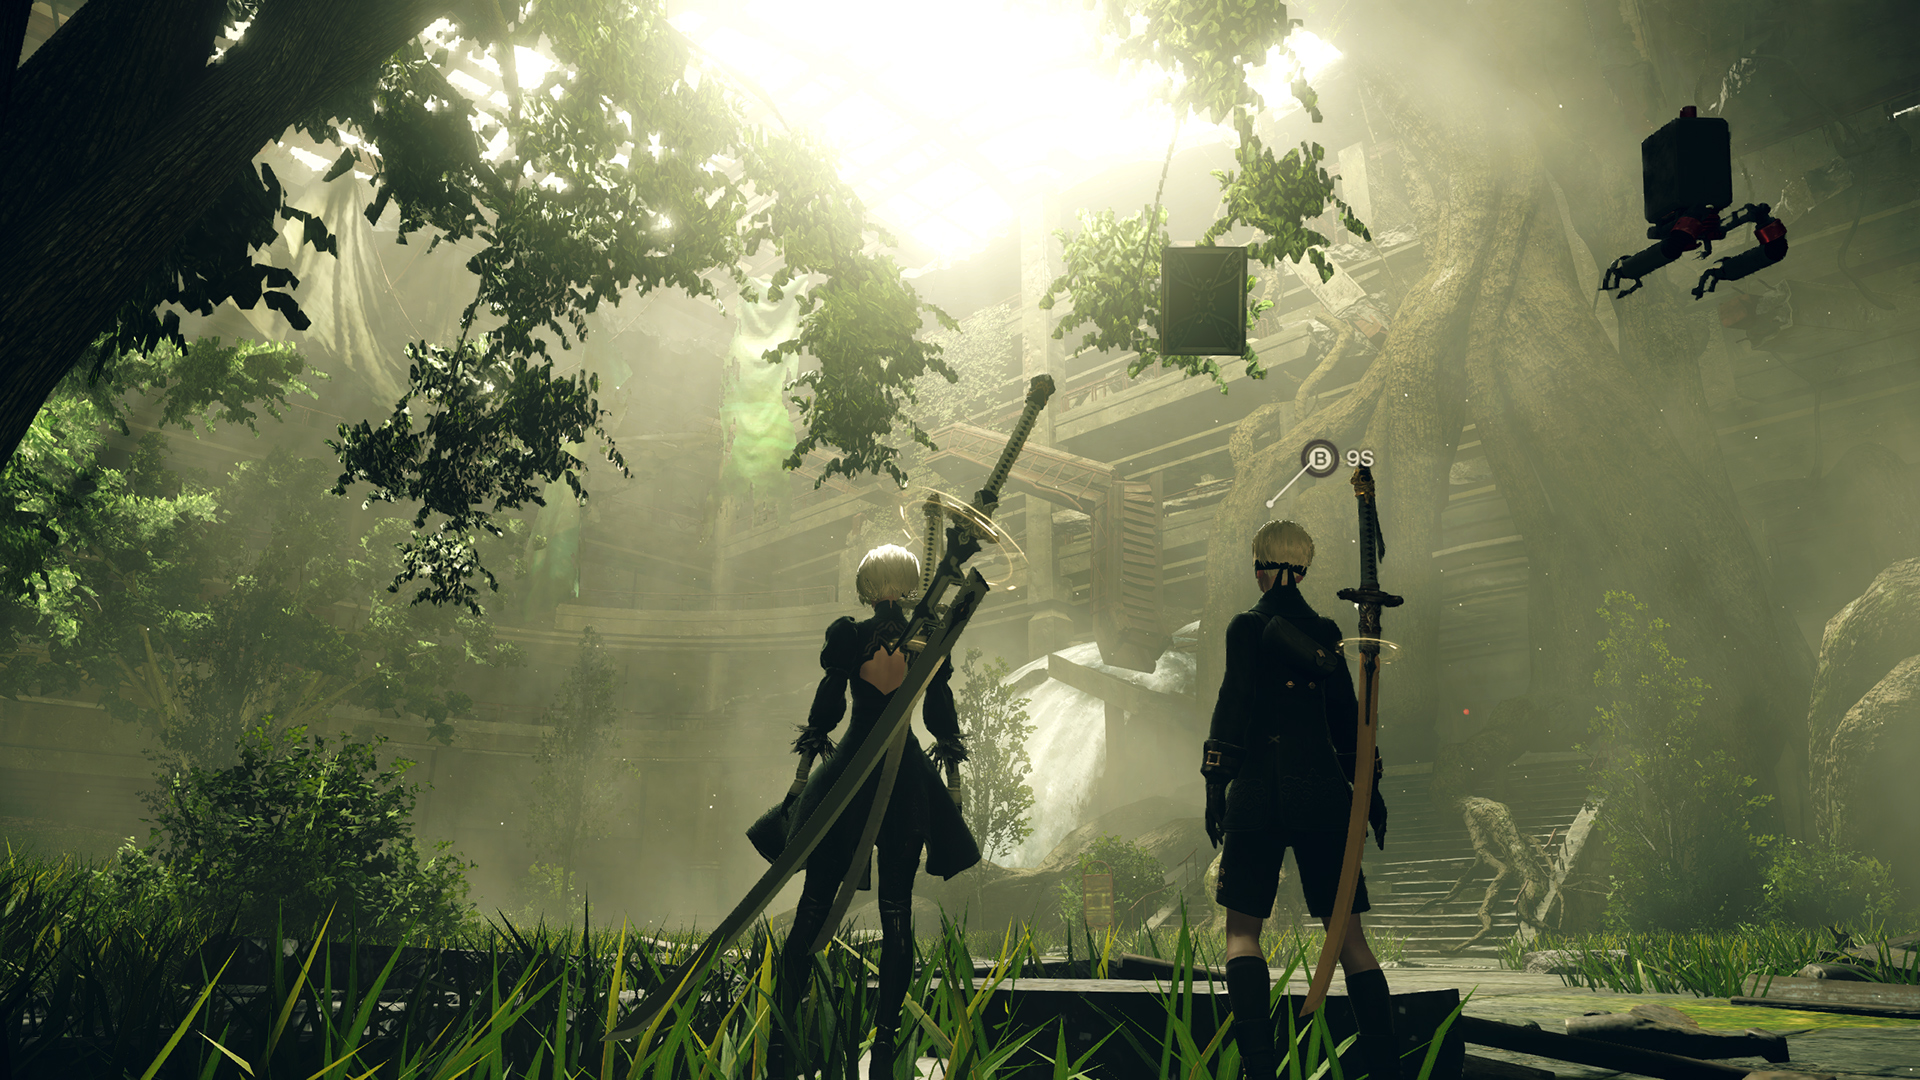 Hd wallpaper nier automata - Nier Automata Stable Fps Mod